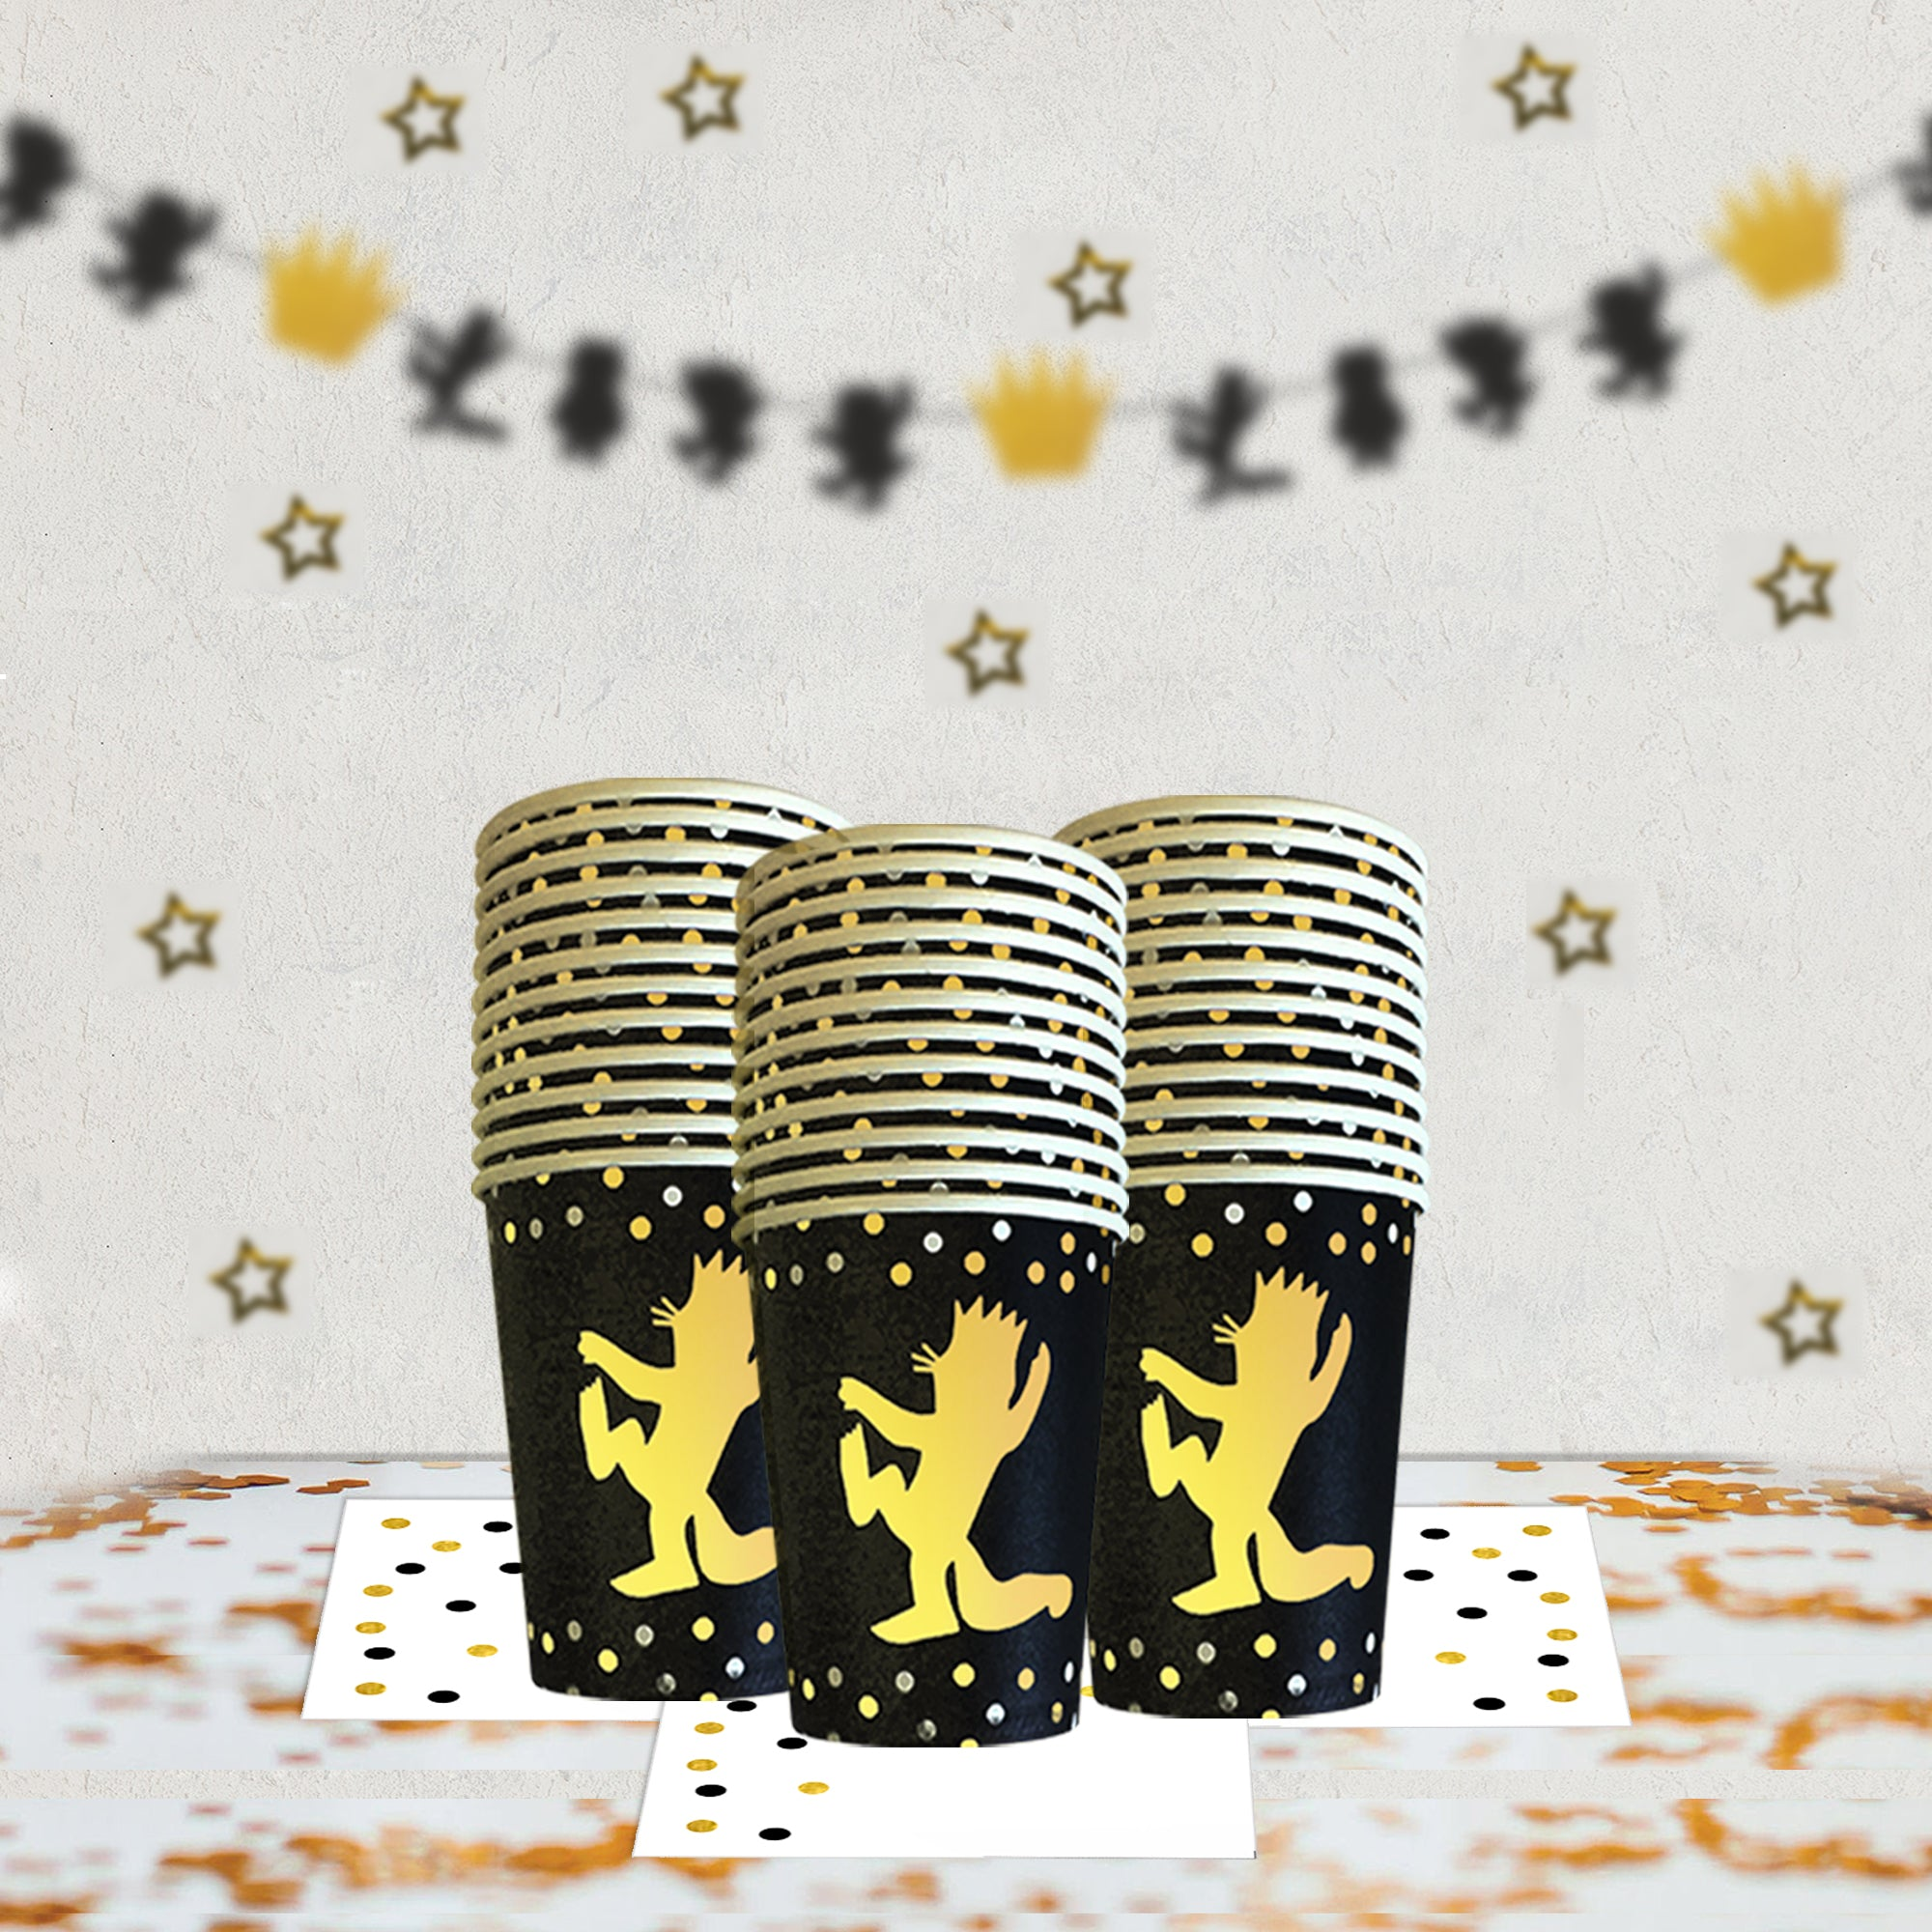 WildOne Complete Party Set. Plates, Cups, Bowl, Napkins, banners, cake toppers | OrangeDolly USA